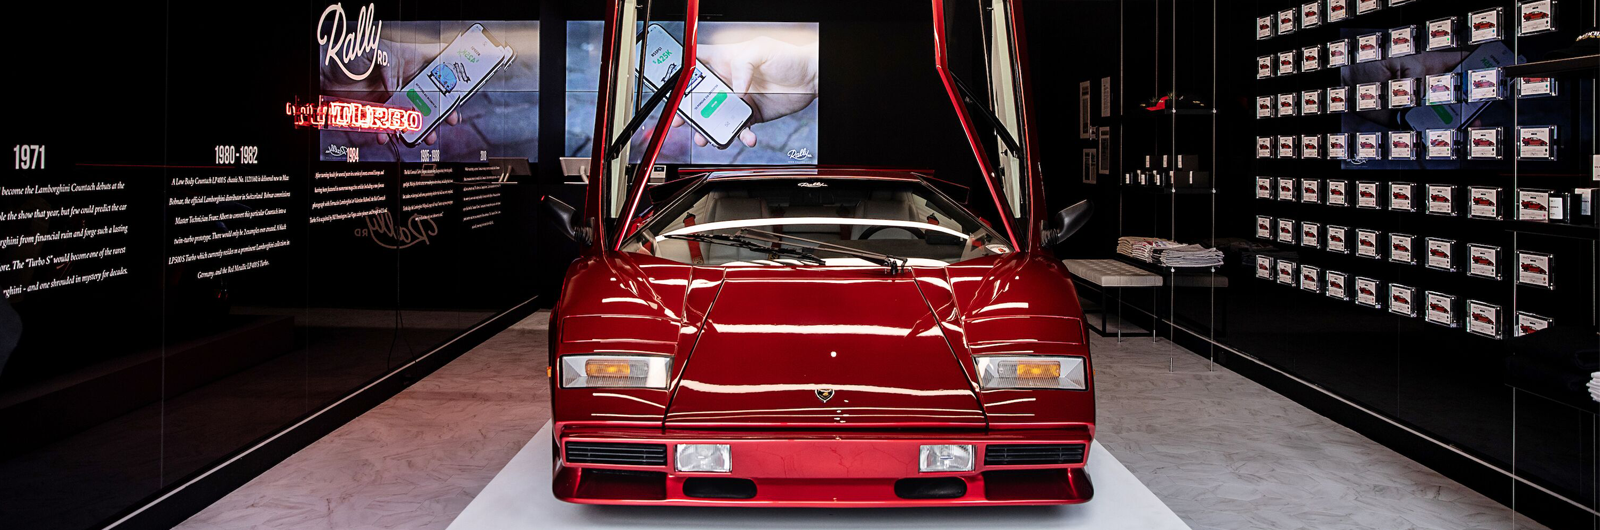 Here's Your Chance to Own a Piece of a (Nearly) One-of-a-Kind Lamborghini